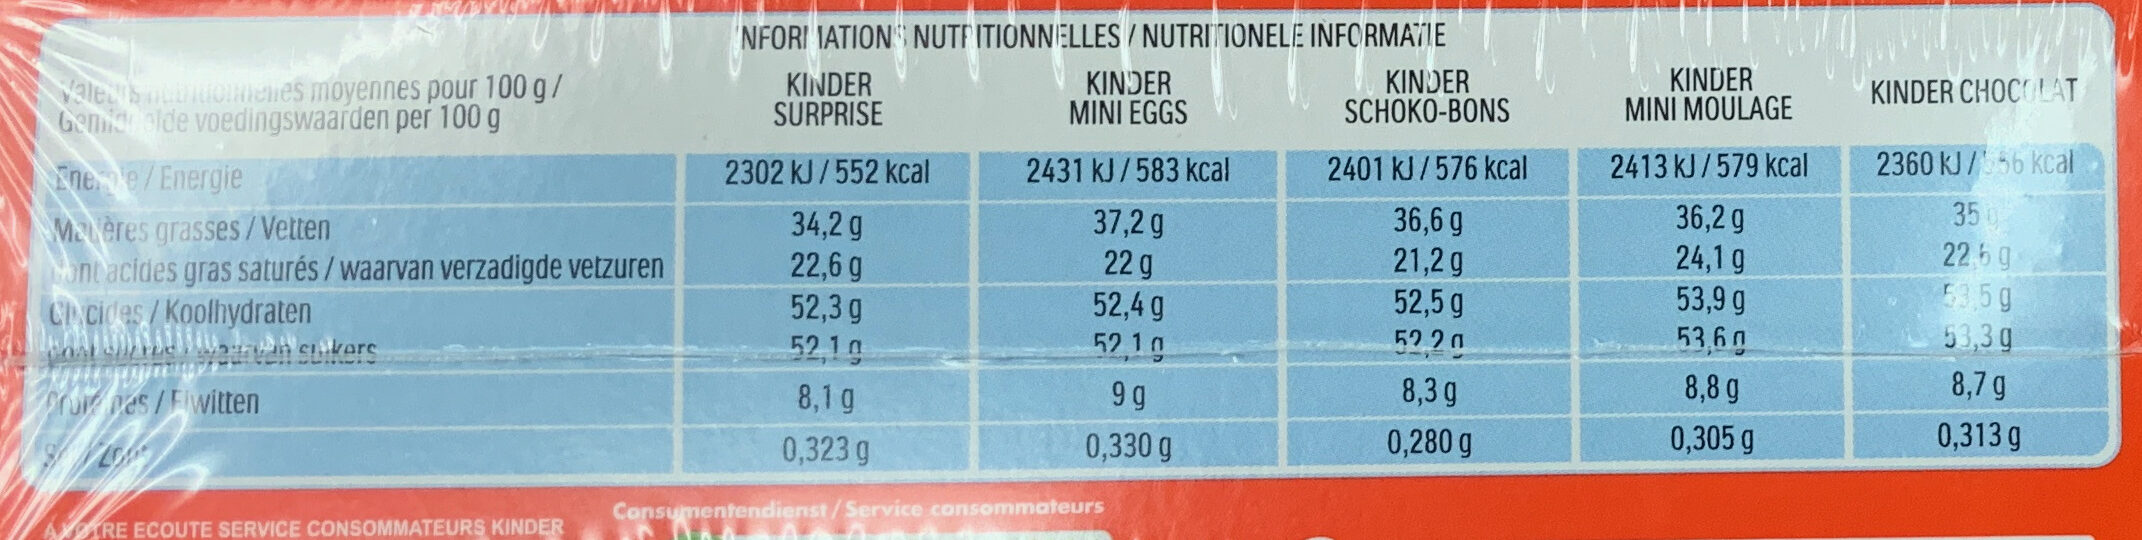 Kinder calendrier de l avent chalet - Nutrition facts - fr